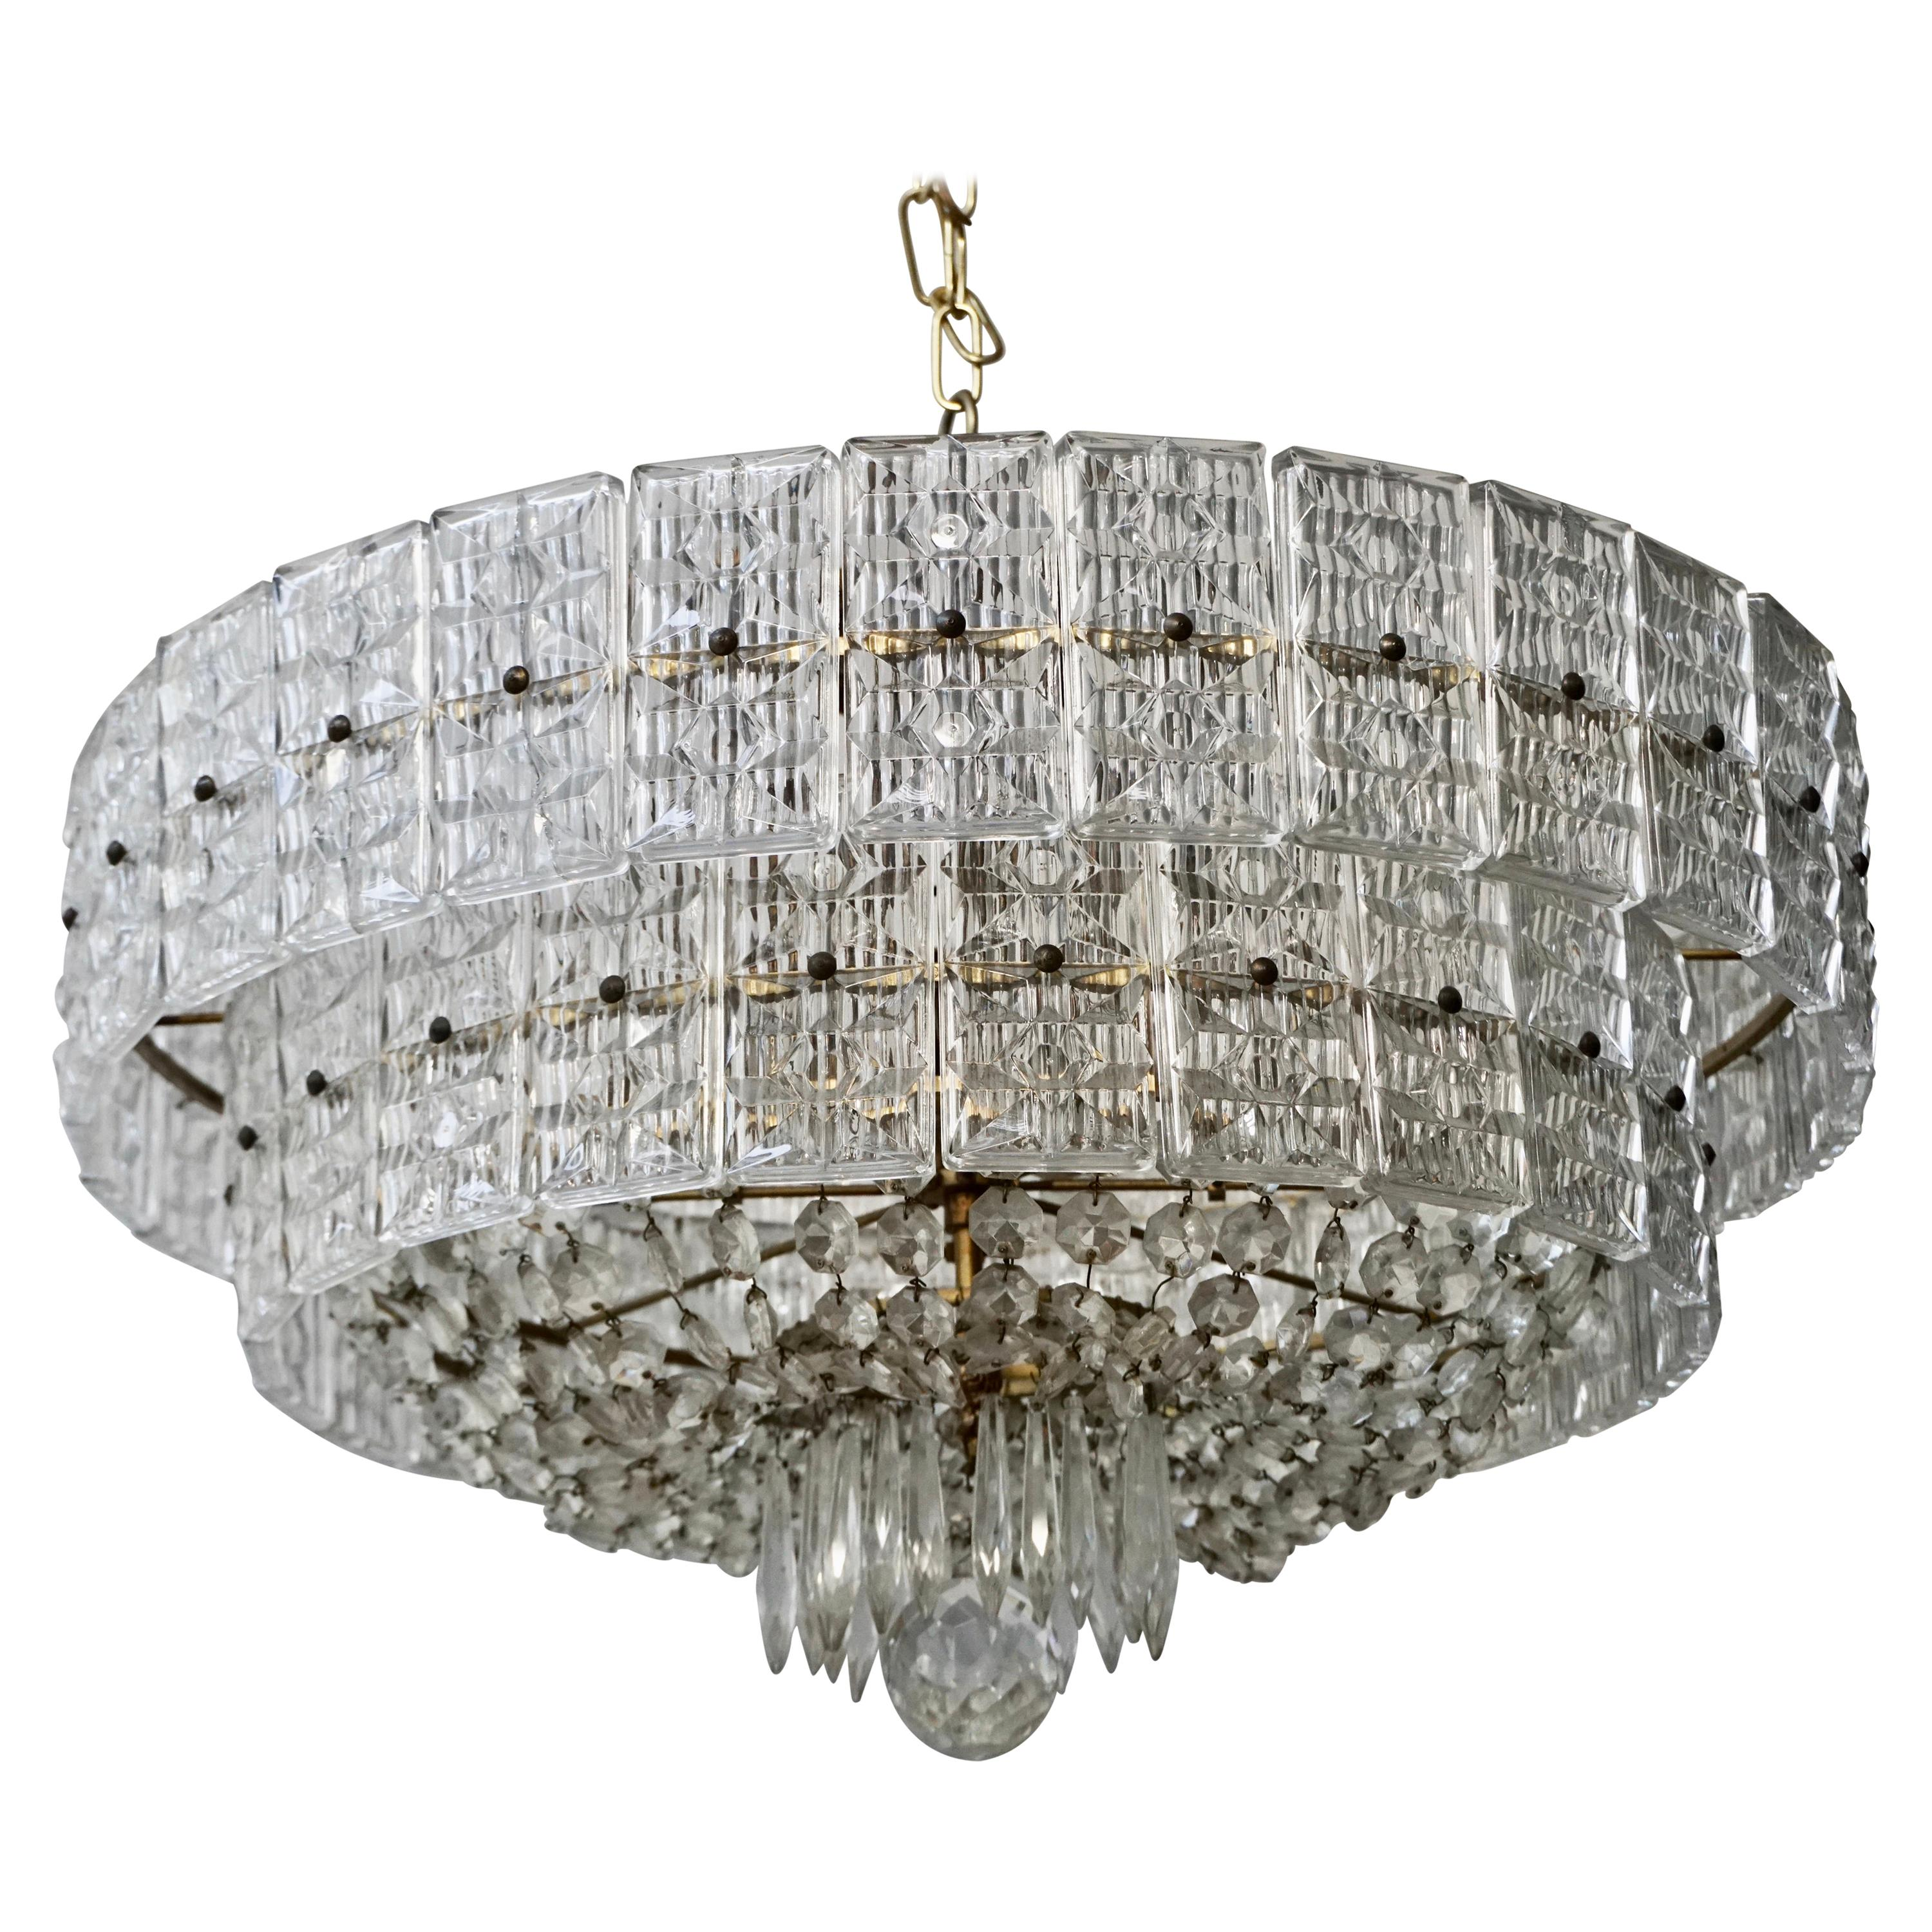 Beaded Amethyst Crystal and Murano Glass Flush Mount